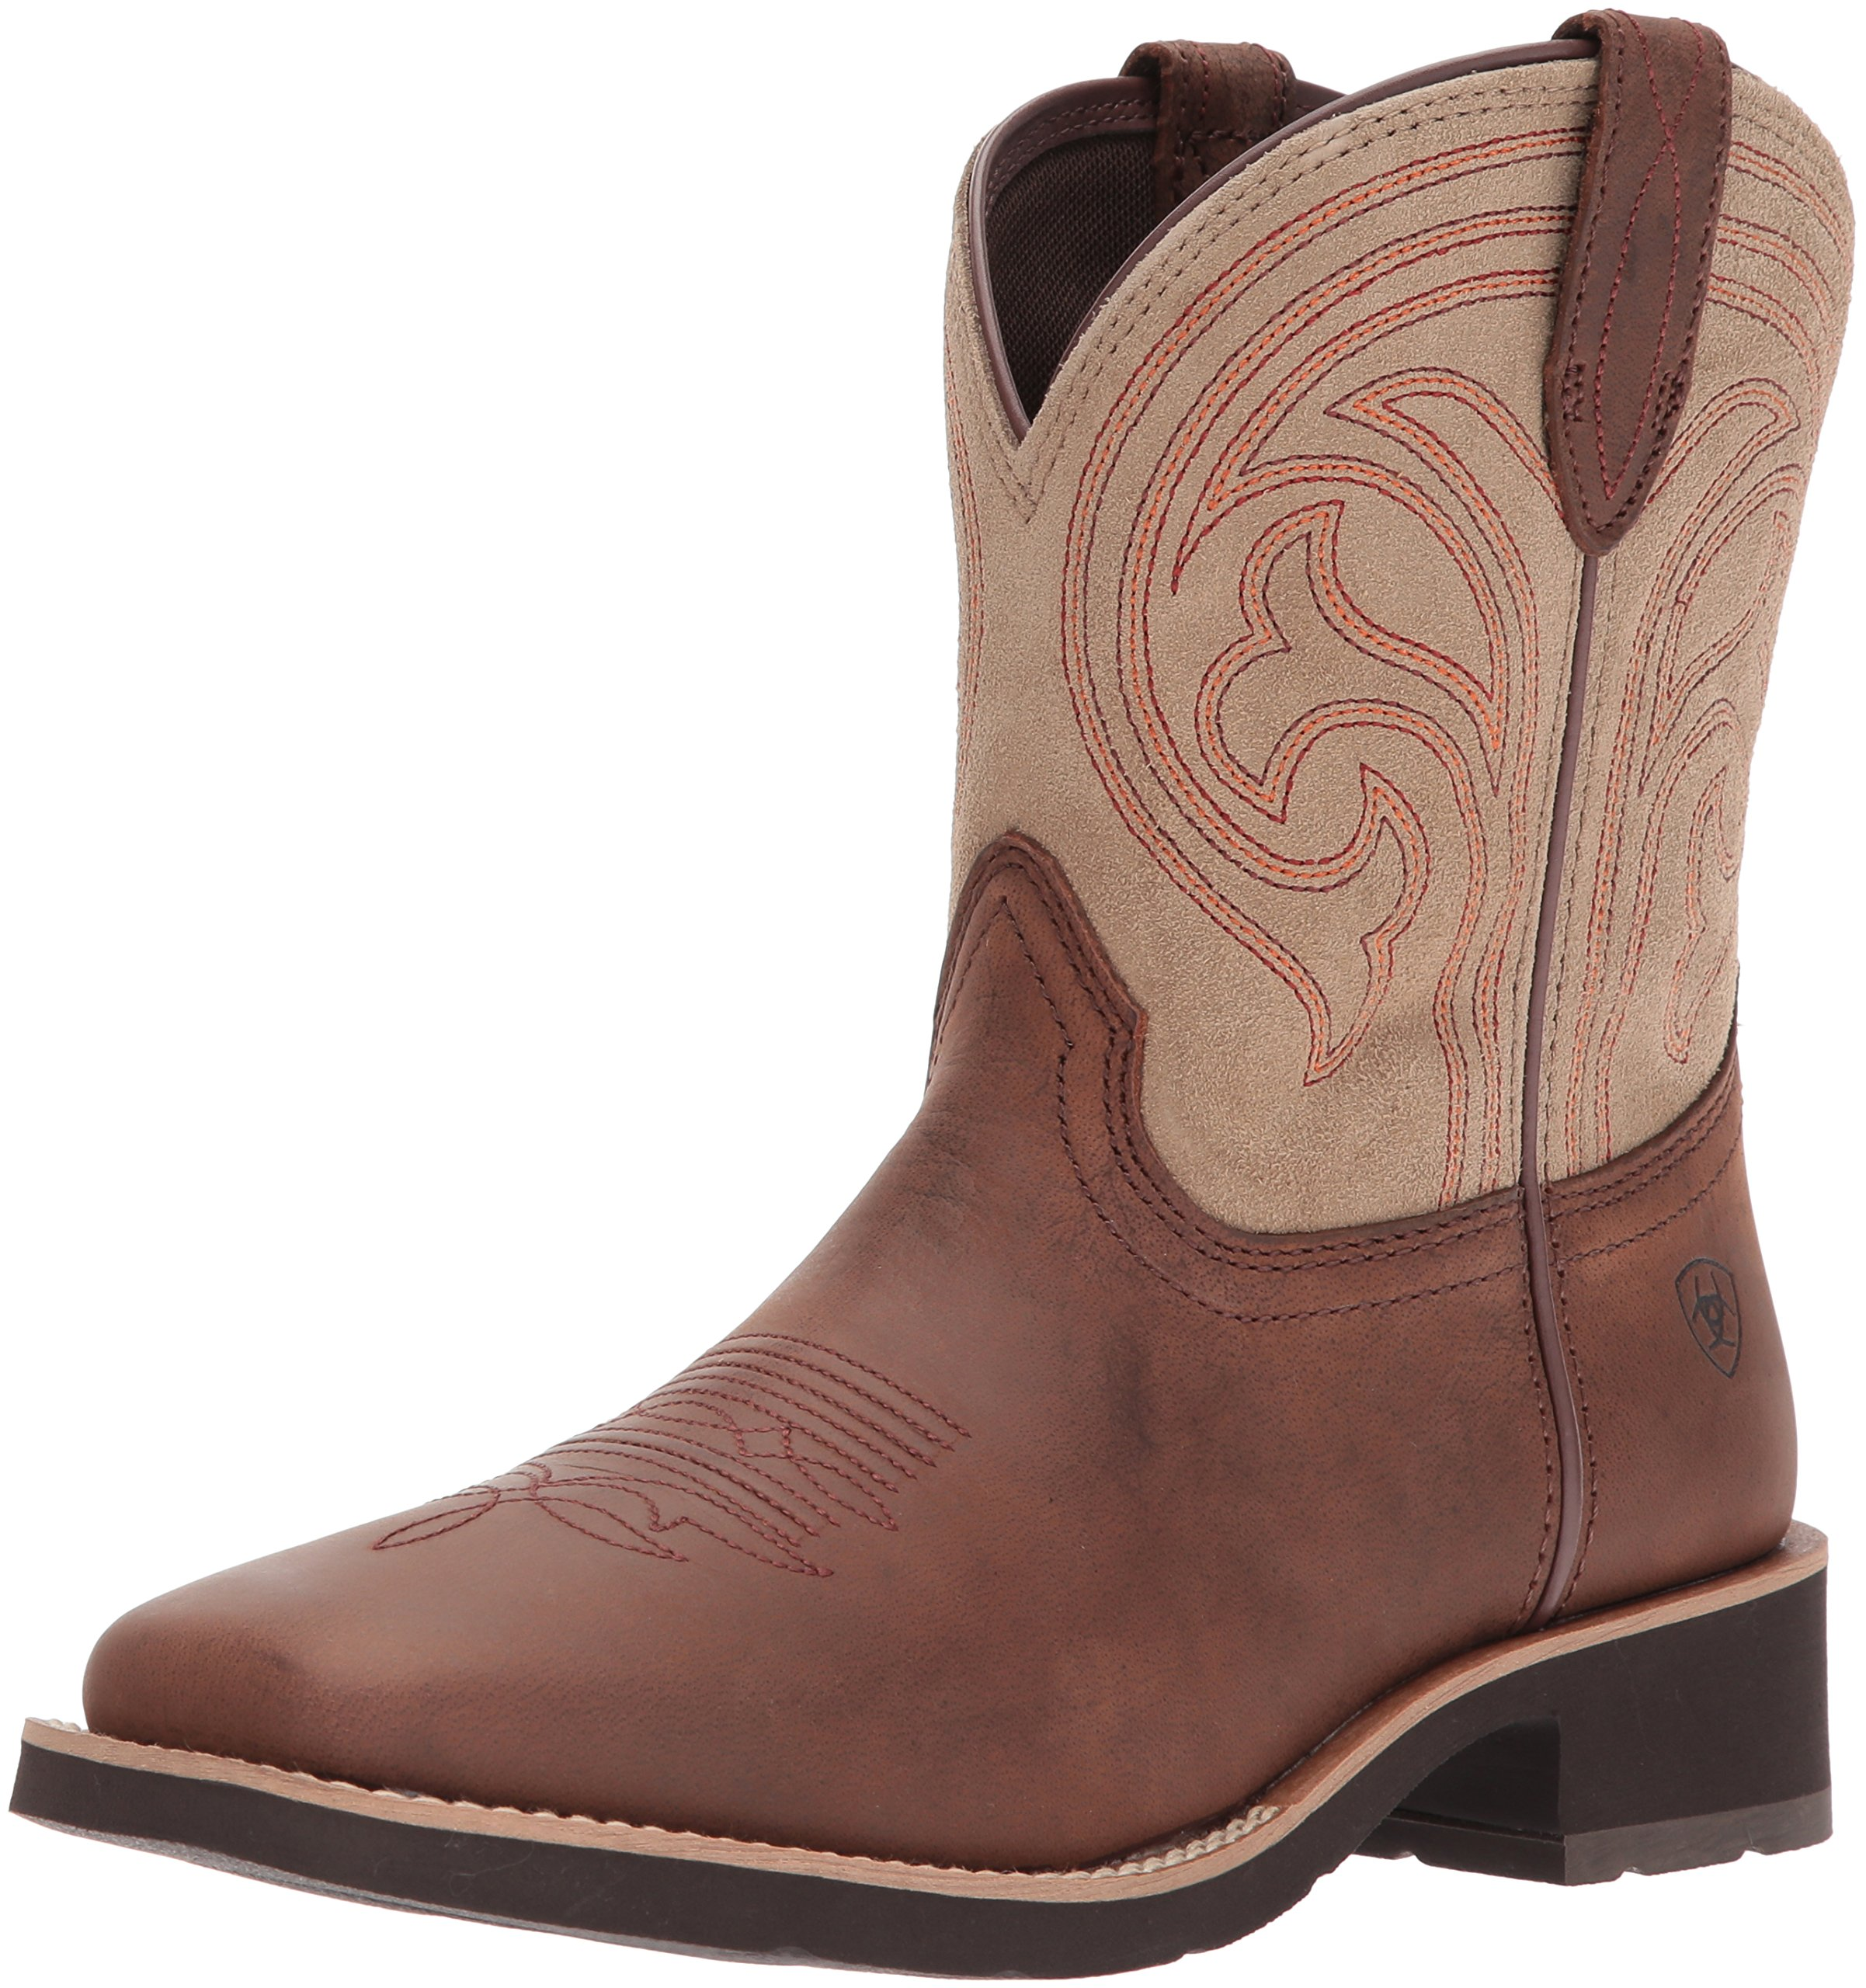 Ariat Women's Shawnee Work Boot, Matte Brown, 10 B US